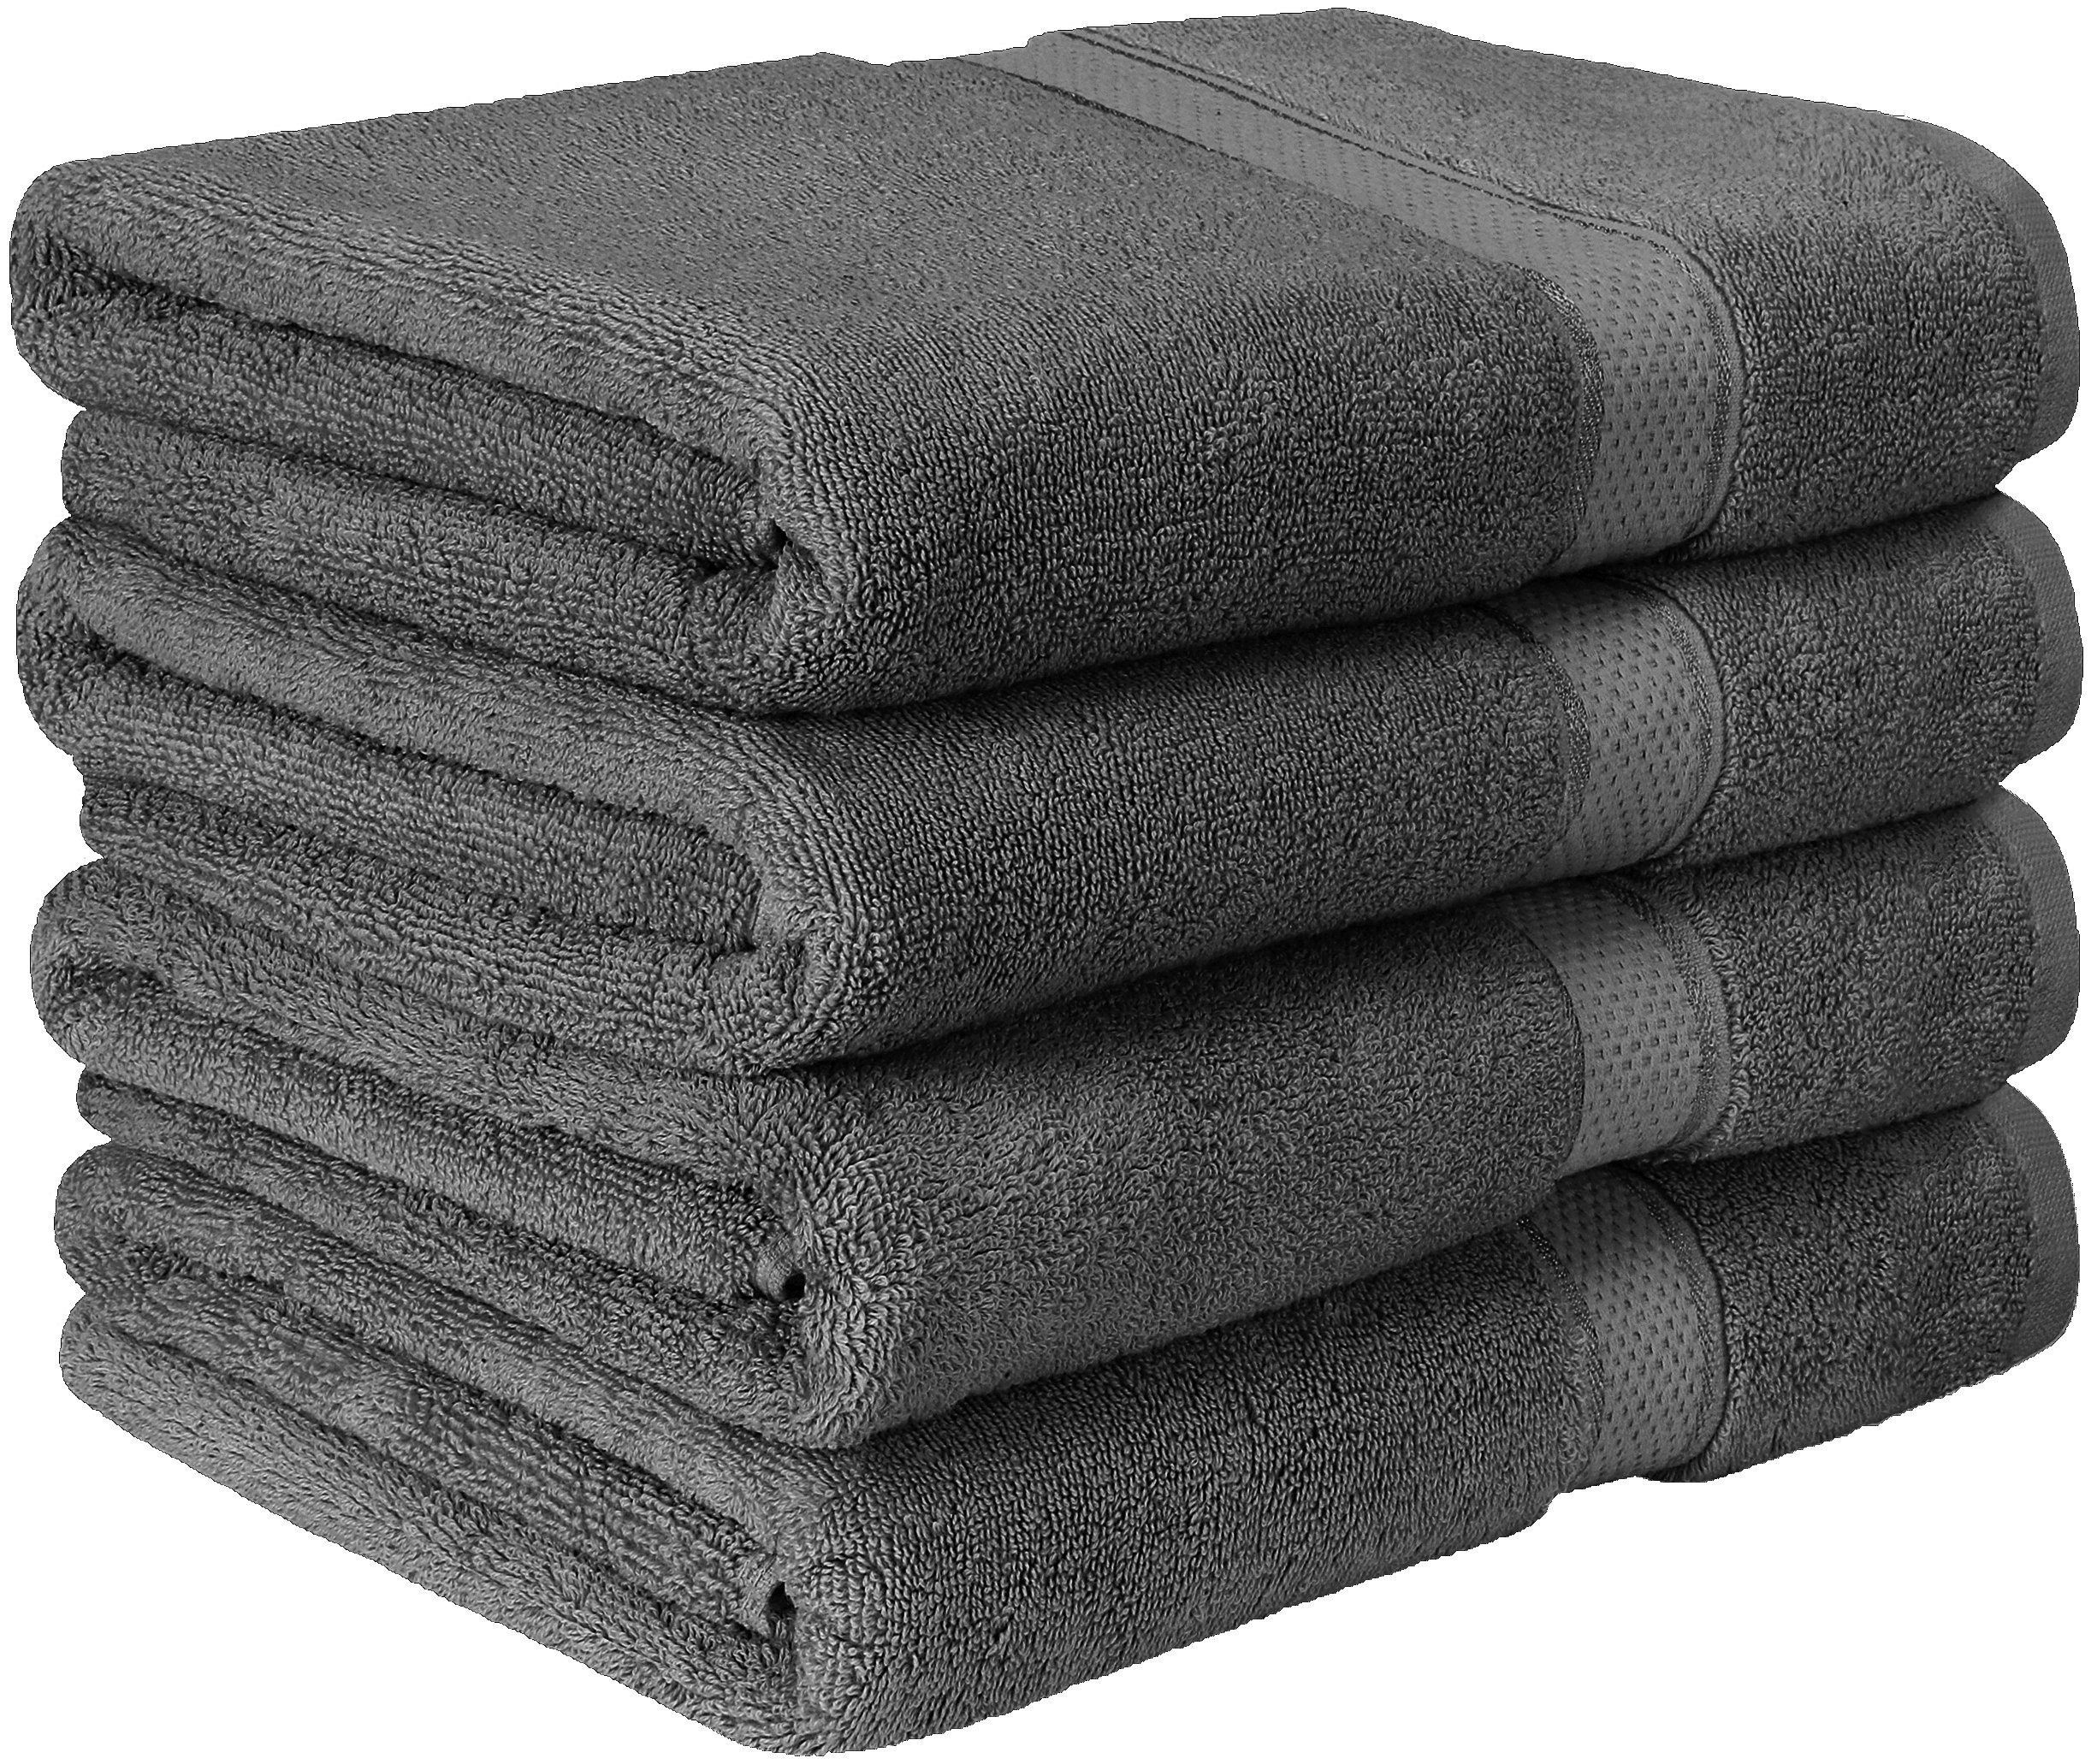 Utopia Towels Premium Bath Towel Set (Pack of 4, 27 x 54) 100% Ring-Spun Cotton Towels for Hotel and Spa, Maximum Softness and Highly Absorbent by (Grey)